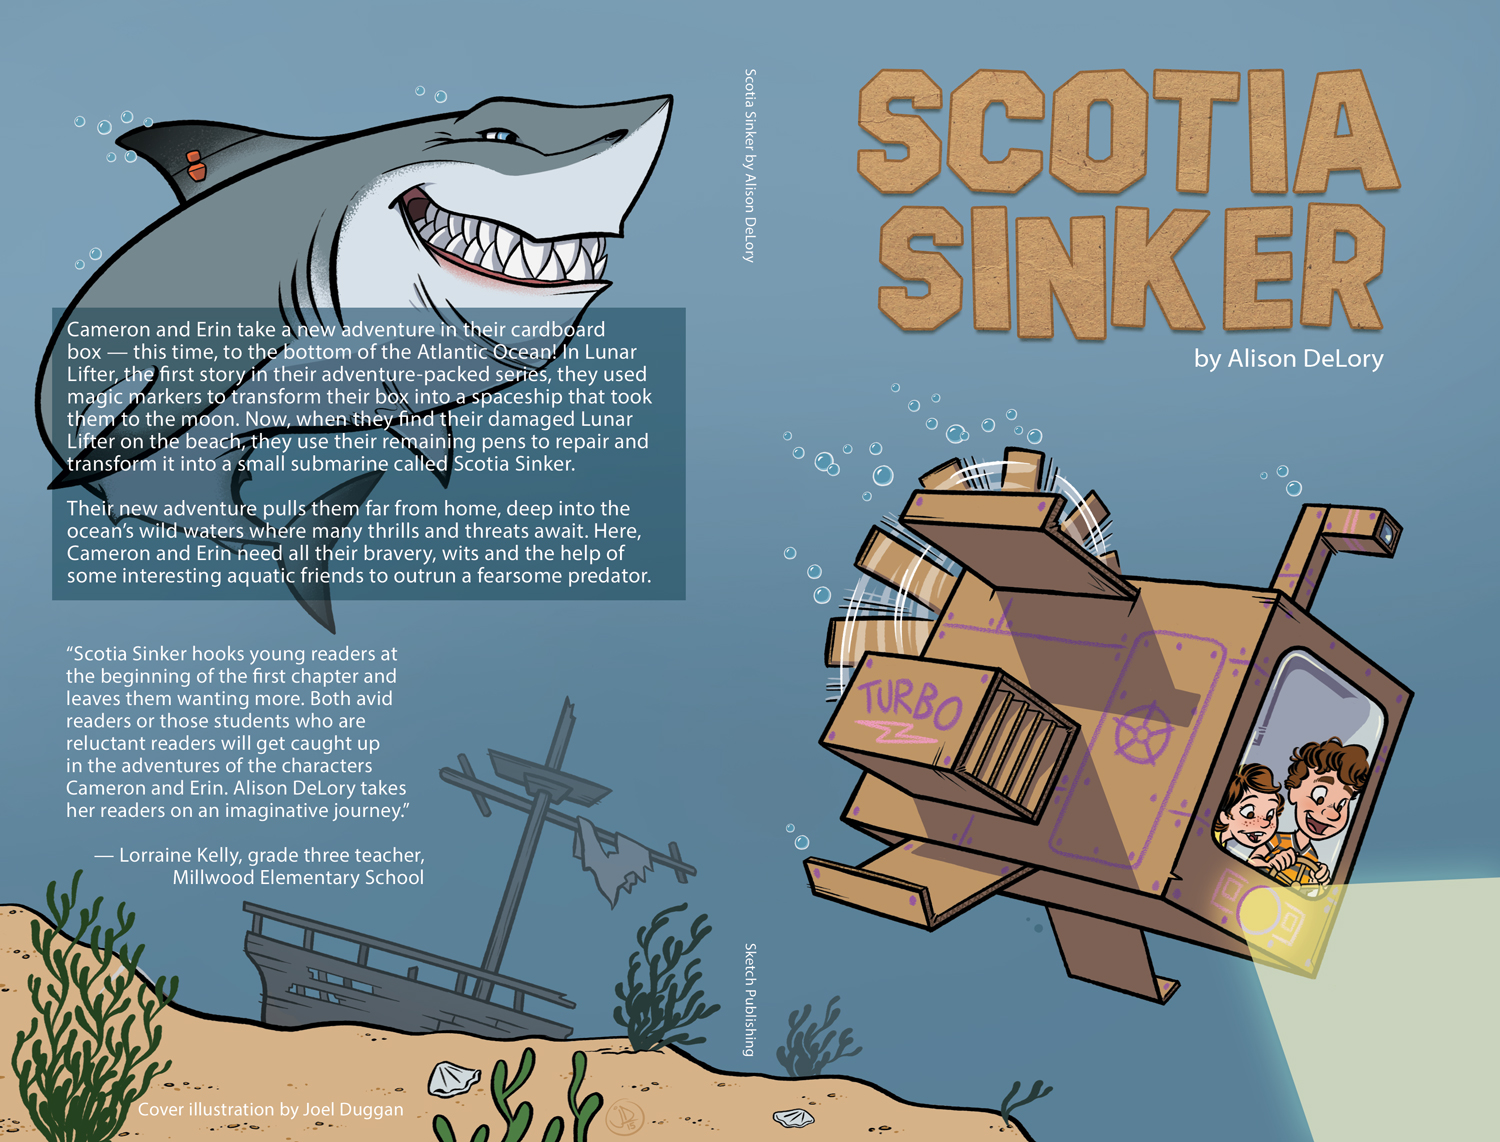 Scotia-Sinker-Cover-FINAL-1500-no-ISBN-web